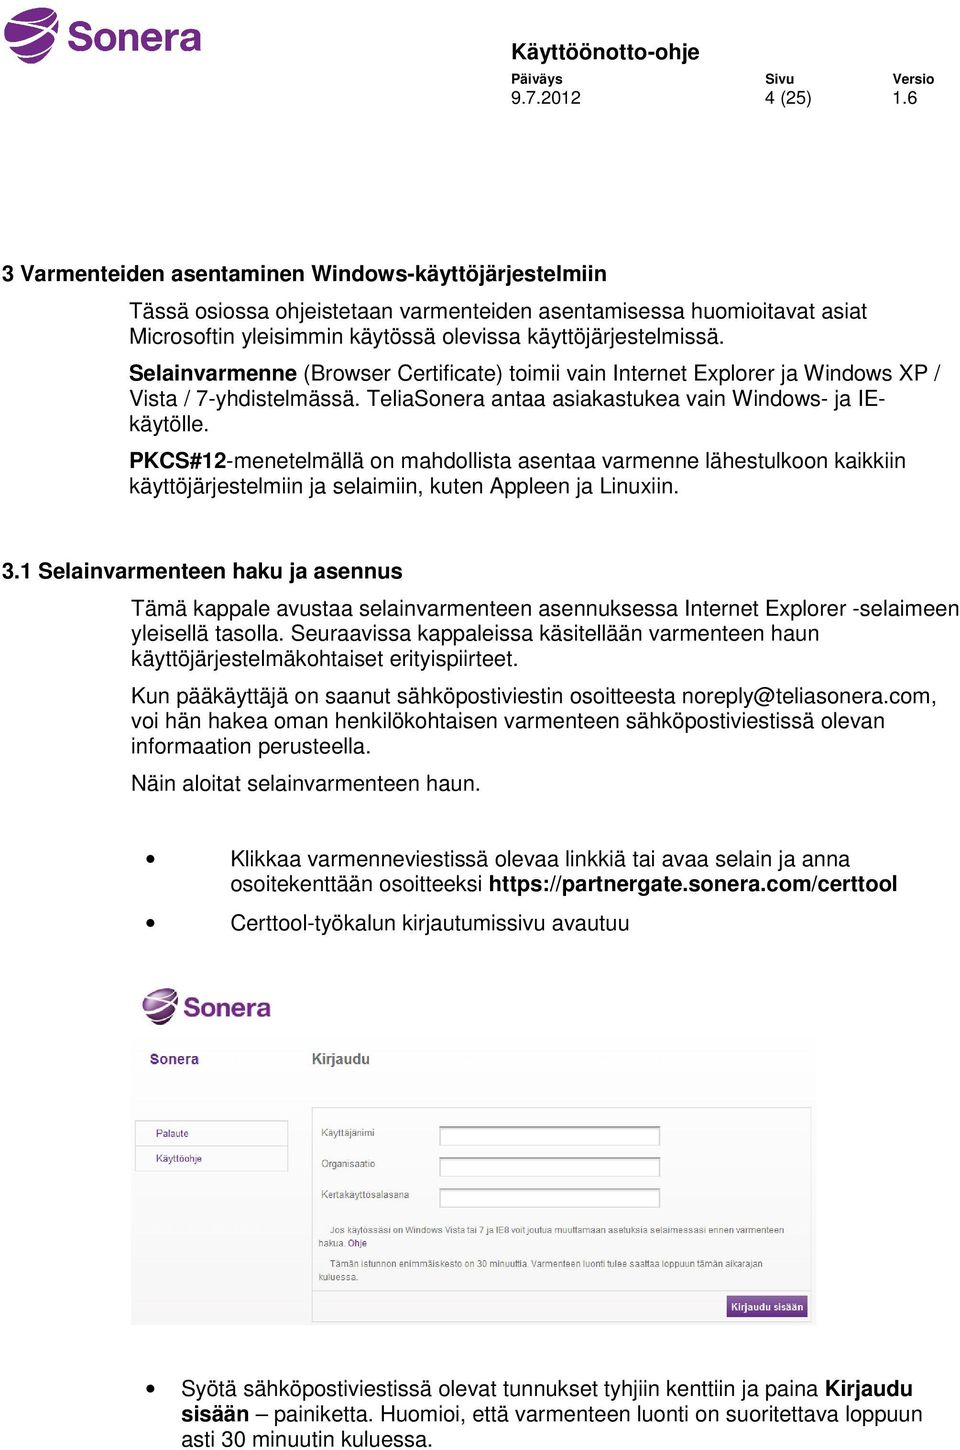 Selainvarmenne (Browser Certificate) toimii vain Internet Explorer ja Windows XP / Vista / 7-yhdistelmässä. TeliaSonera antaa asiakastukea vain Windows- ja IEkäytölle.